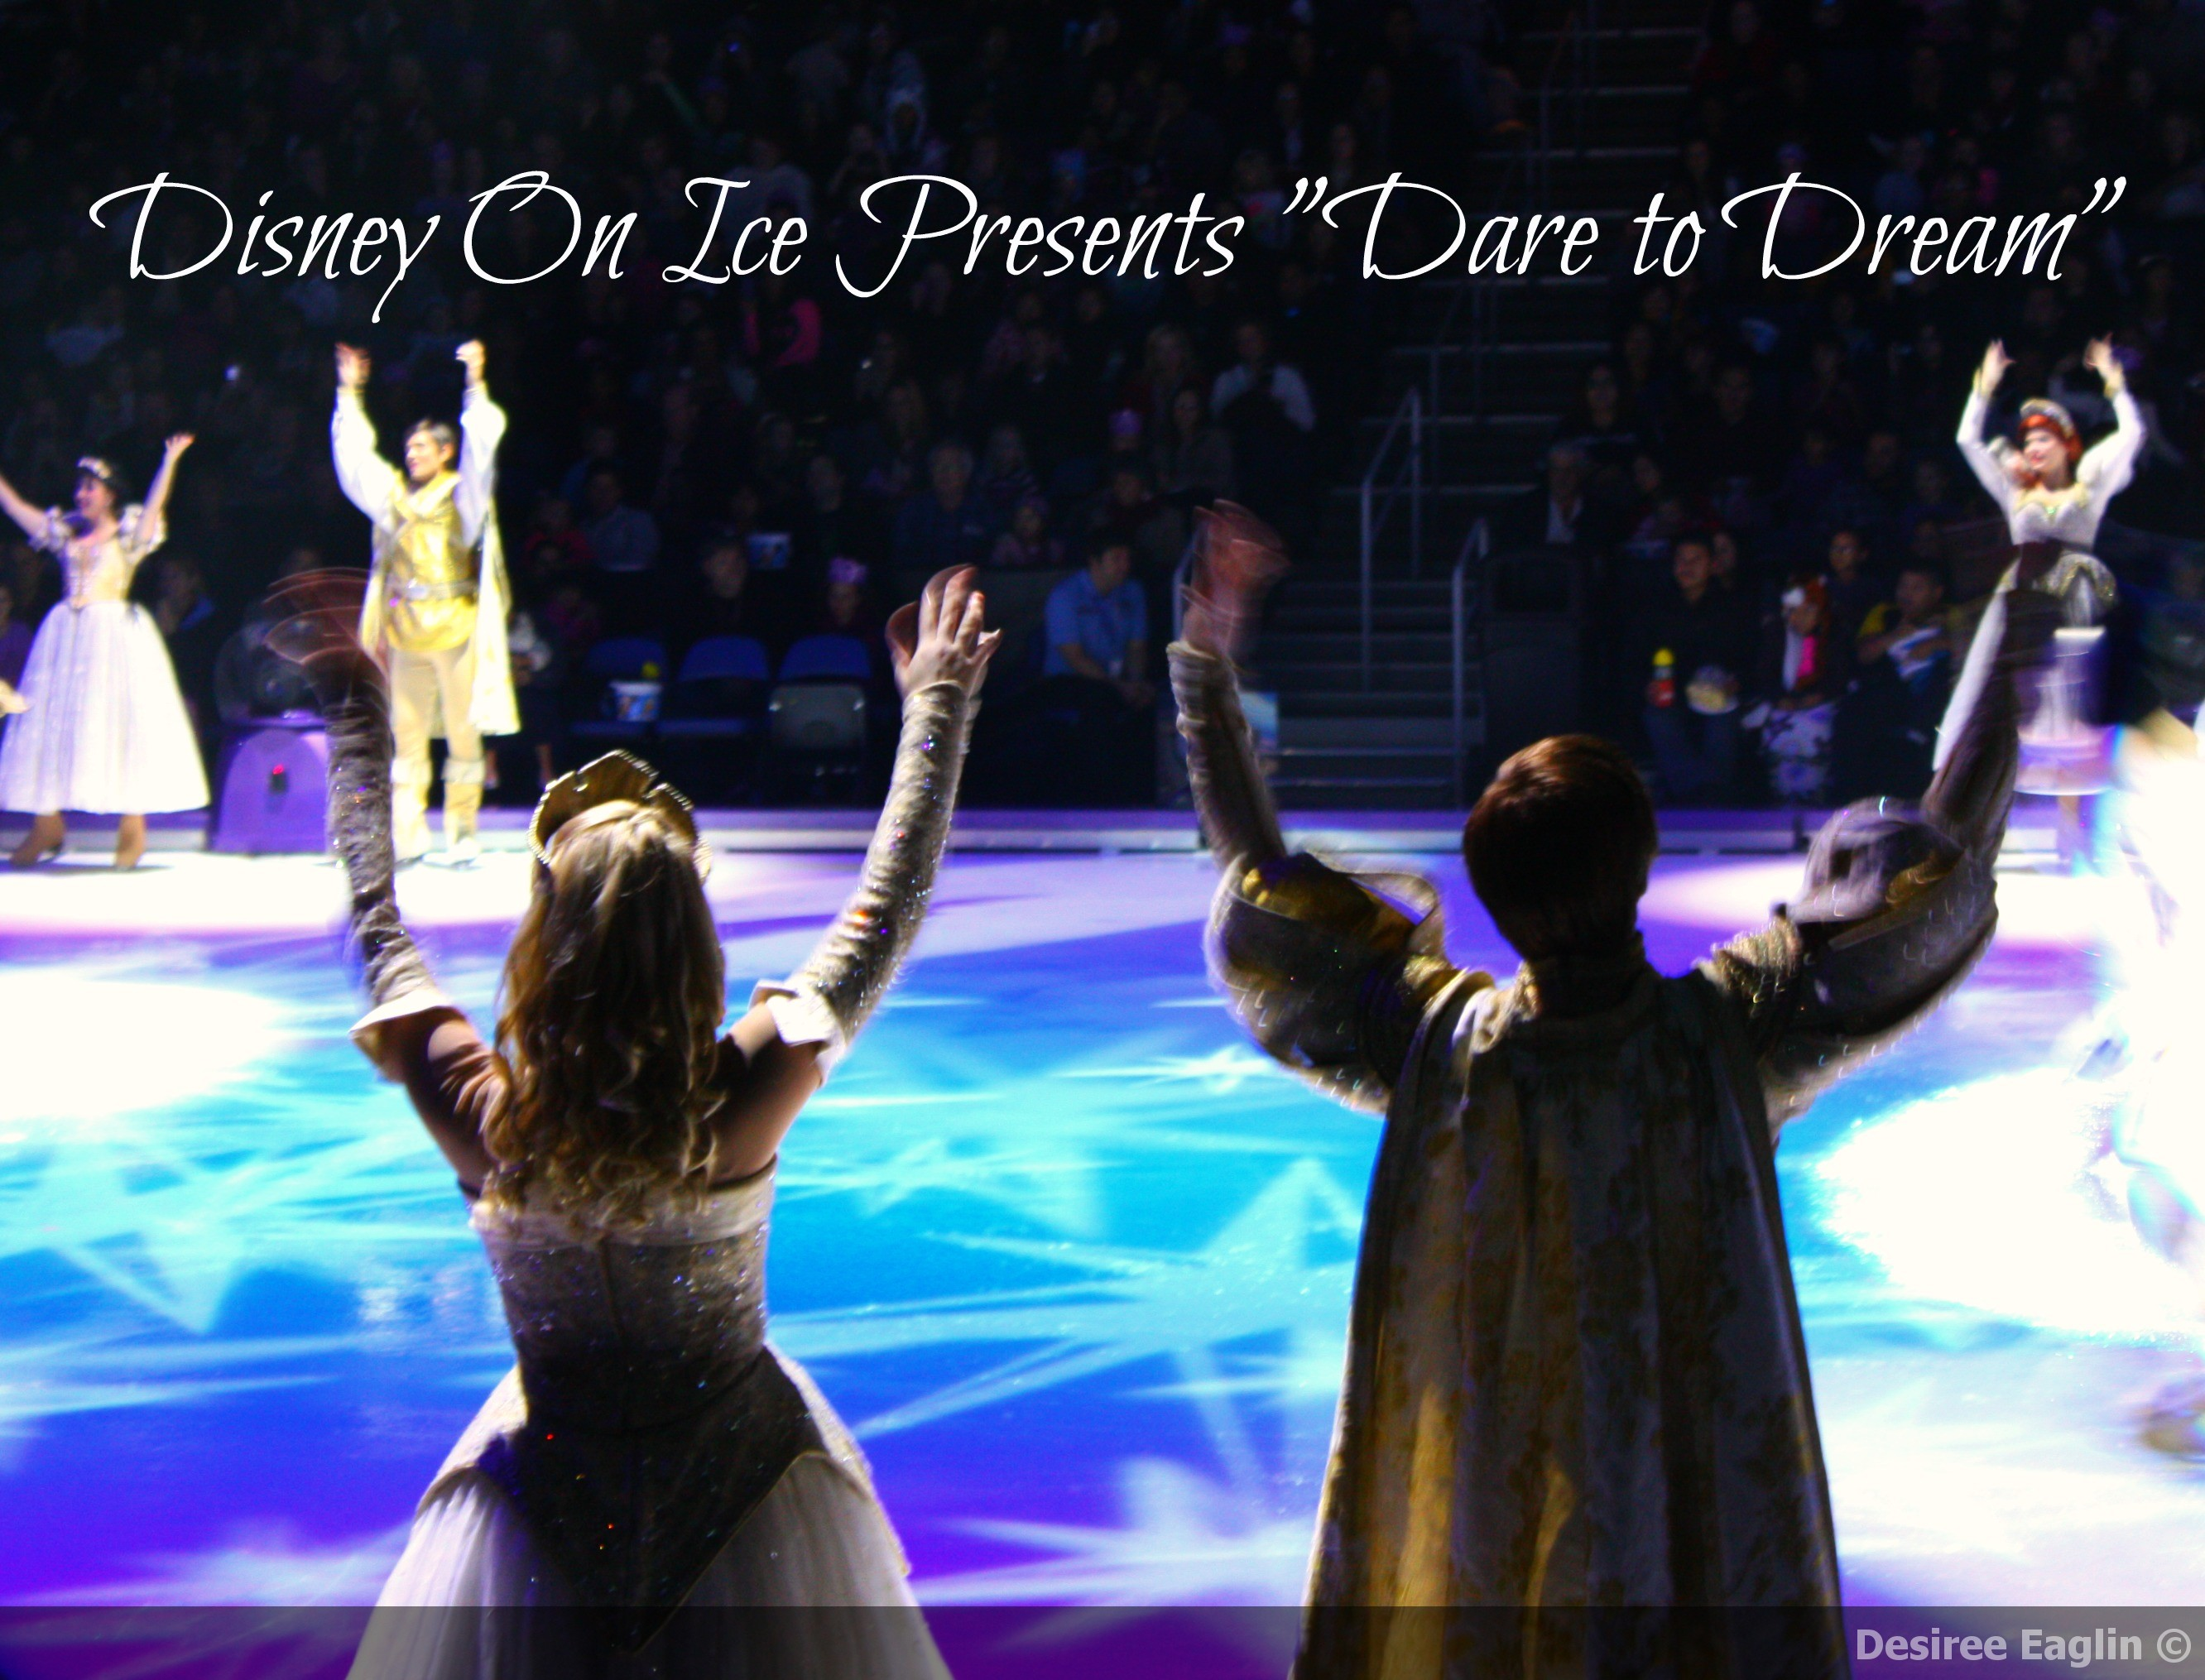 disney on ice, dare to dream, disney, ice skating, ice skating shows, disney shows, disney family shows, family,